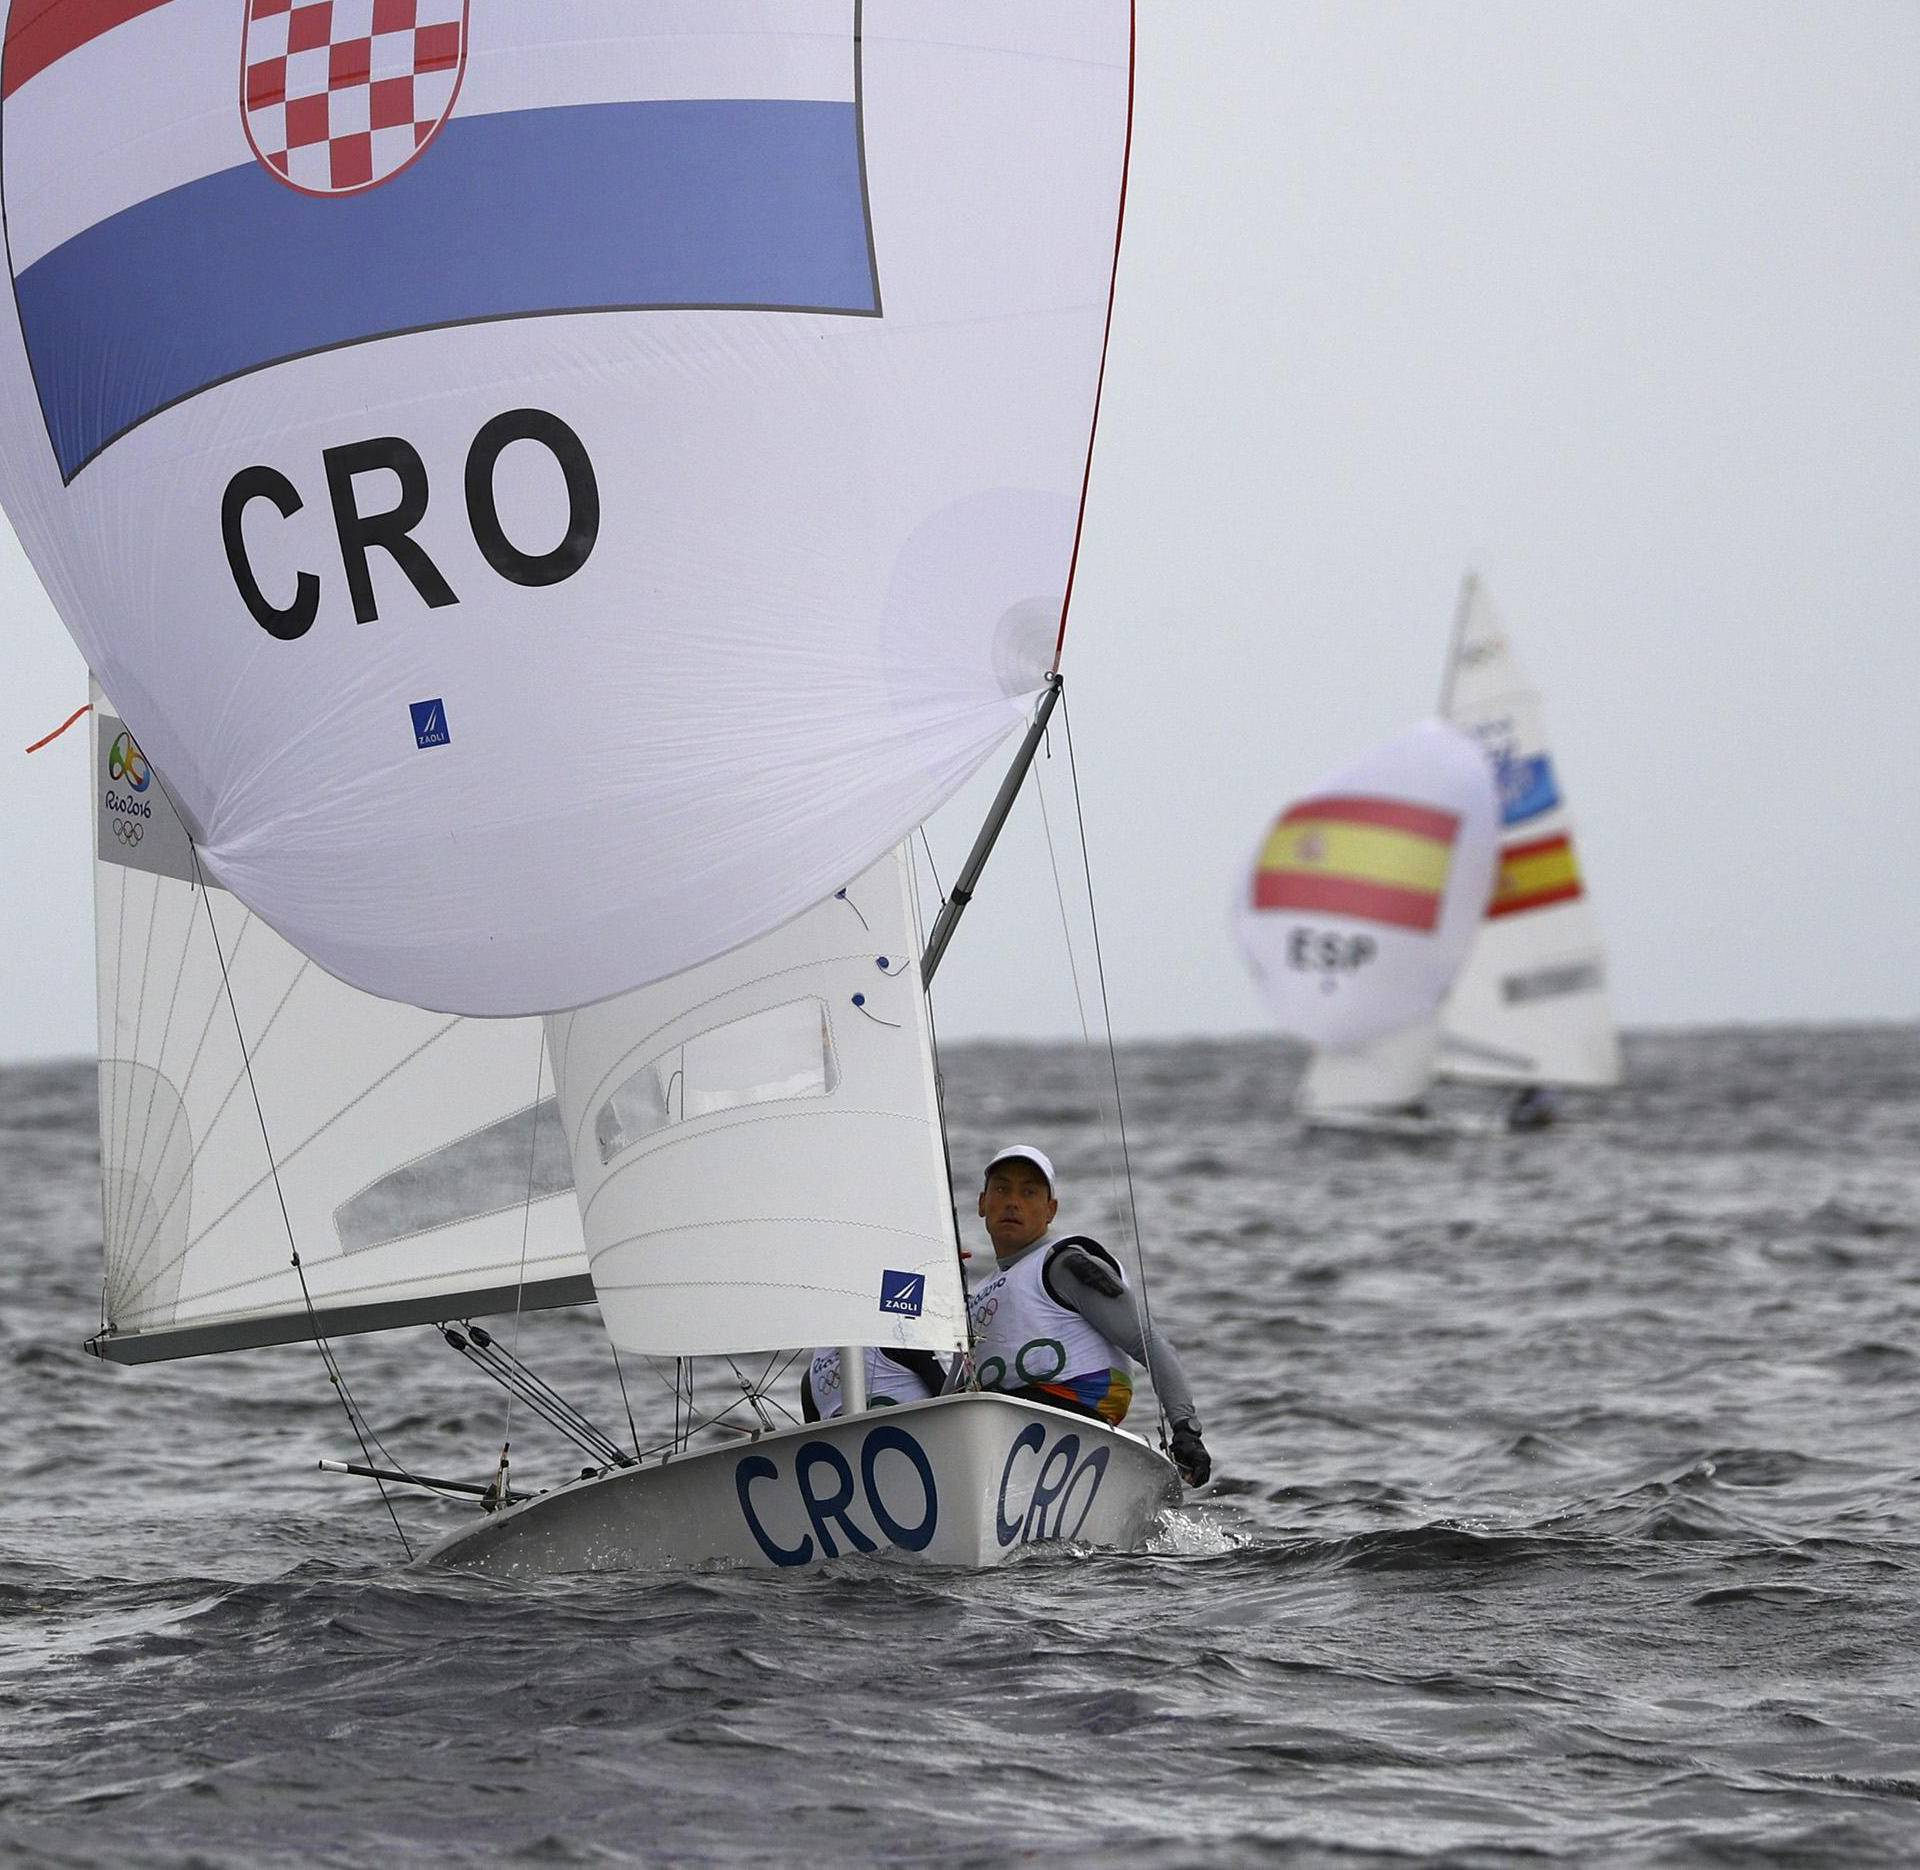 Sailing - Men's Two Person Dinghy - 470 - Race 1/2